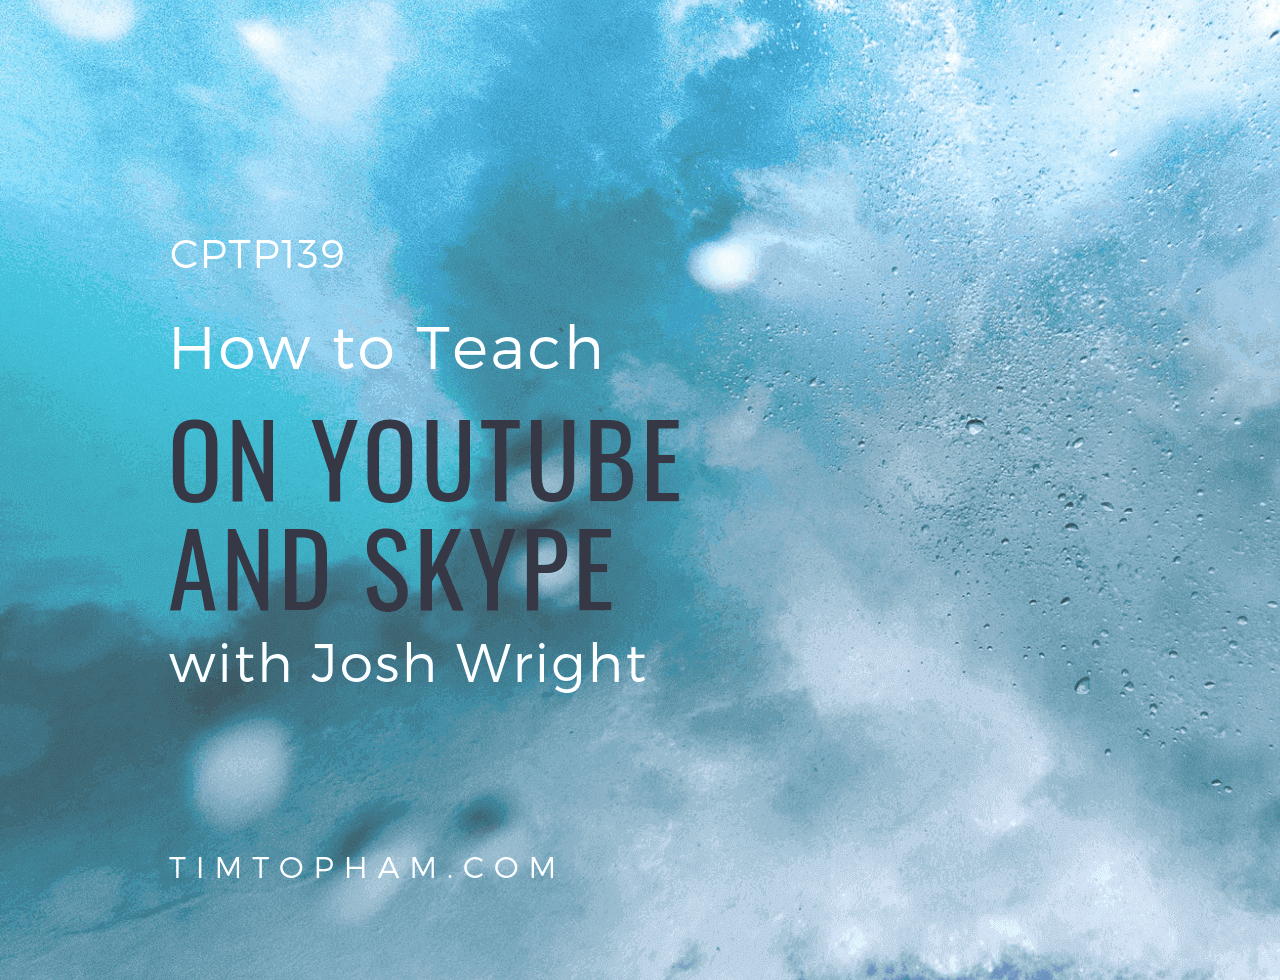 CPTP139_-How-to-Teach-on-YouTube-and-Skype-with-Josh-Wright